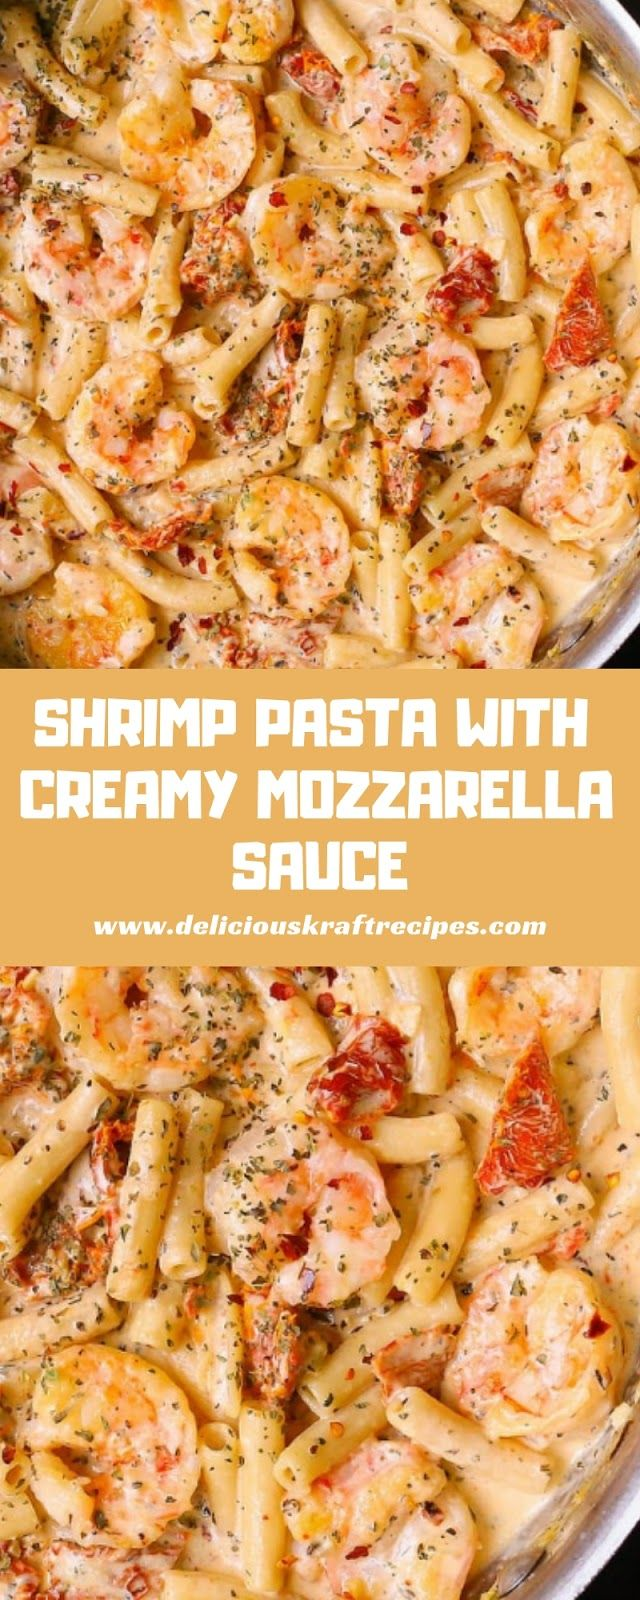 SHRIMP PASTA WITH CREAMY MOZZARELLA SAUCE #shrimppasta